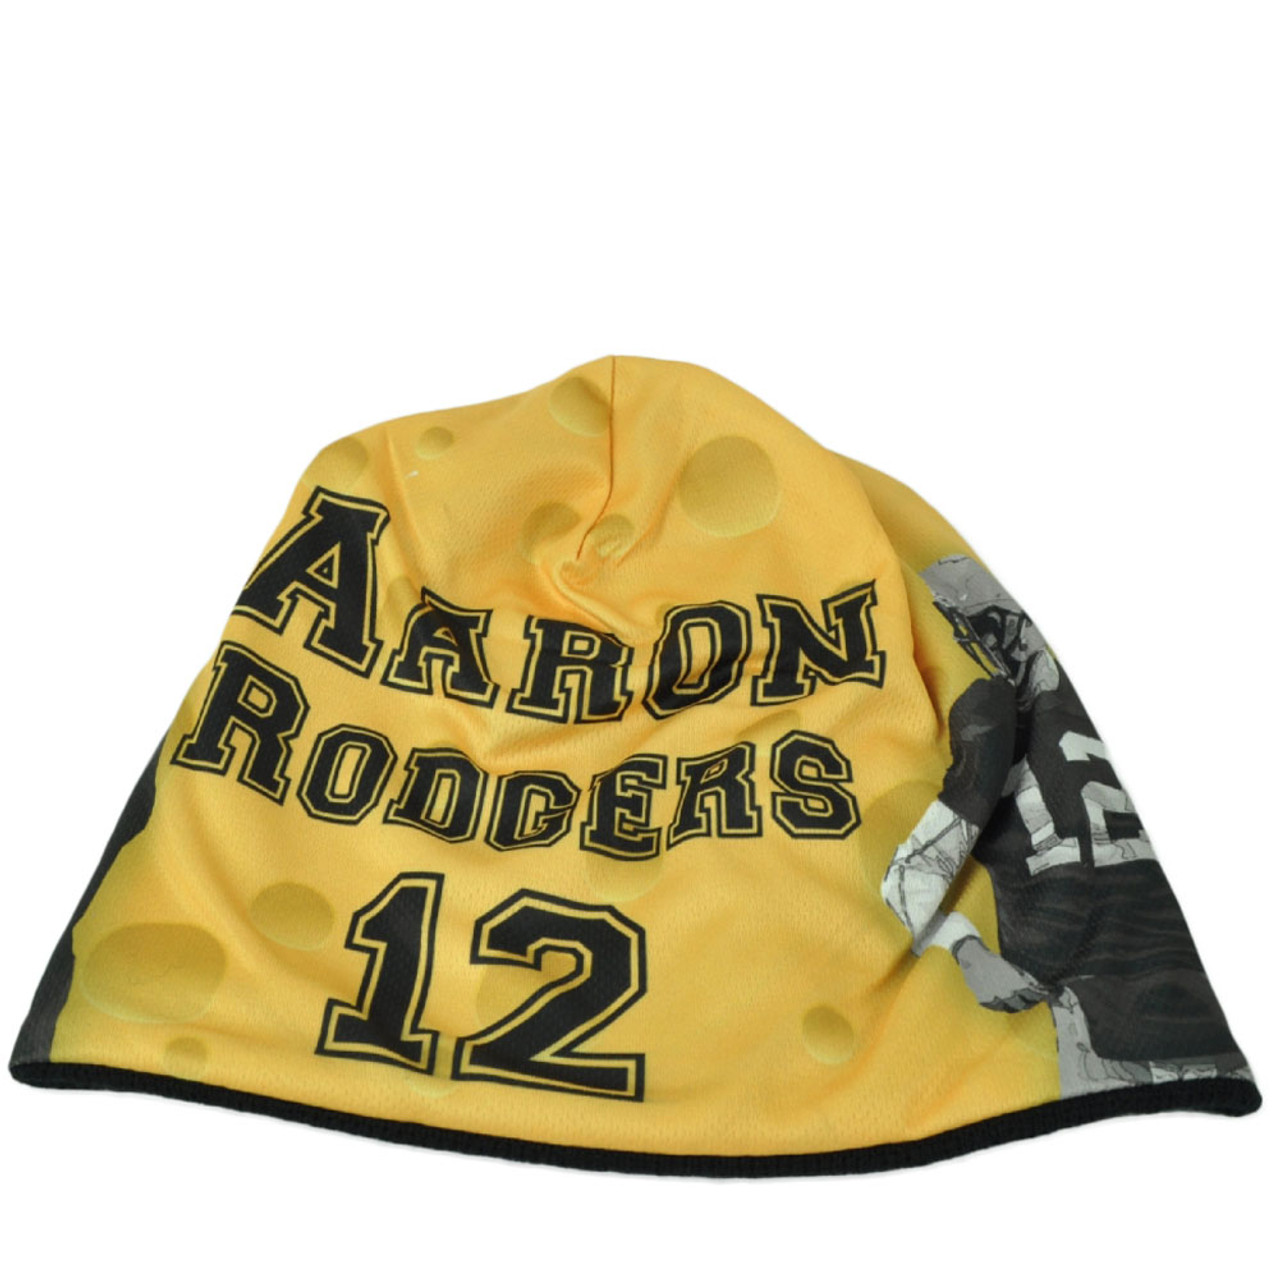 7b95523552dbb3 NFL Green Bay Packers Aaron Rodgers 12 Sublimated Player Yellow Knit Beanie  Hat - Cap Store Online.com